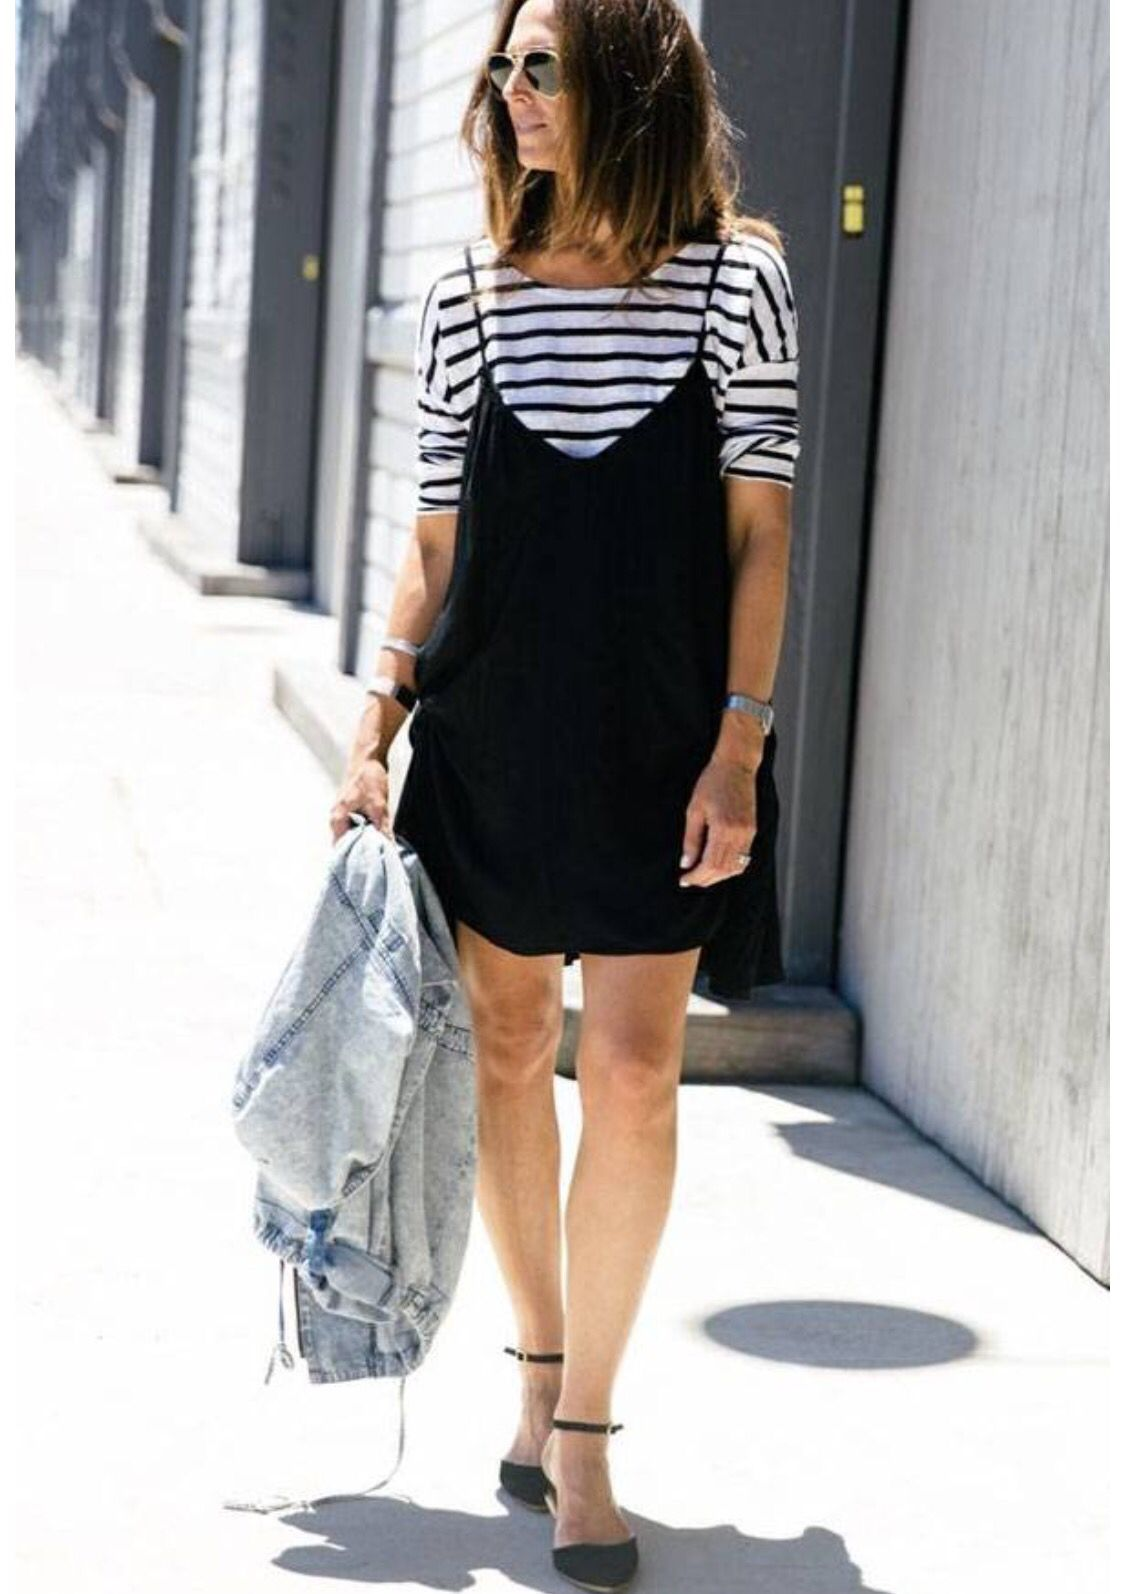 Superposition grad pinterest street styles street and clothes